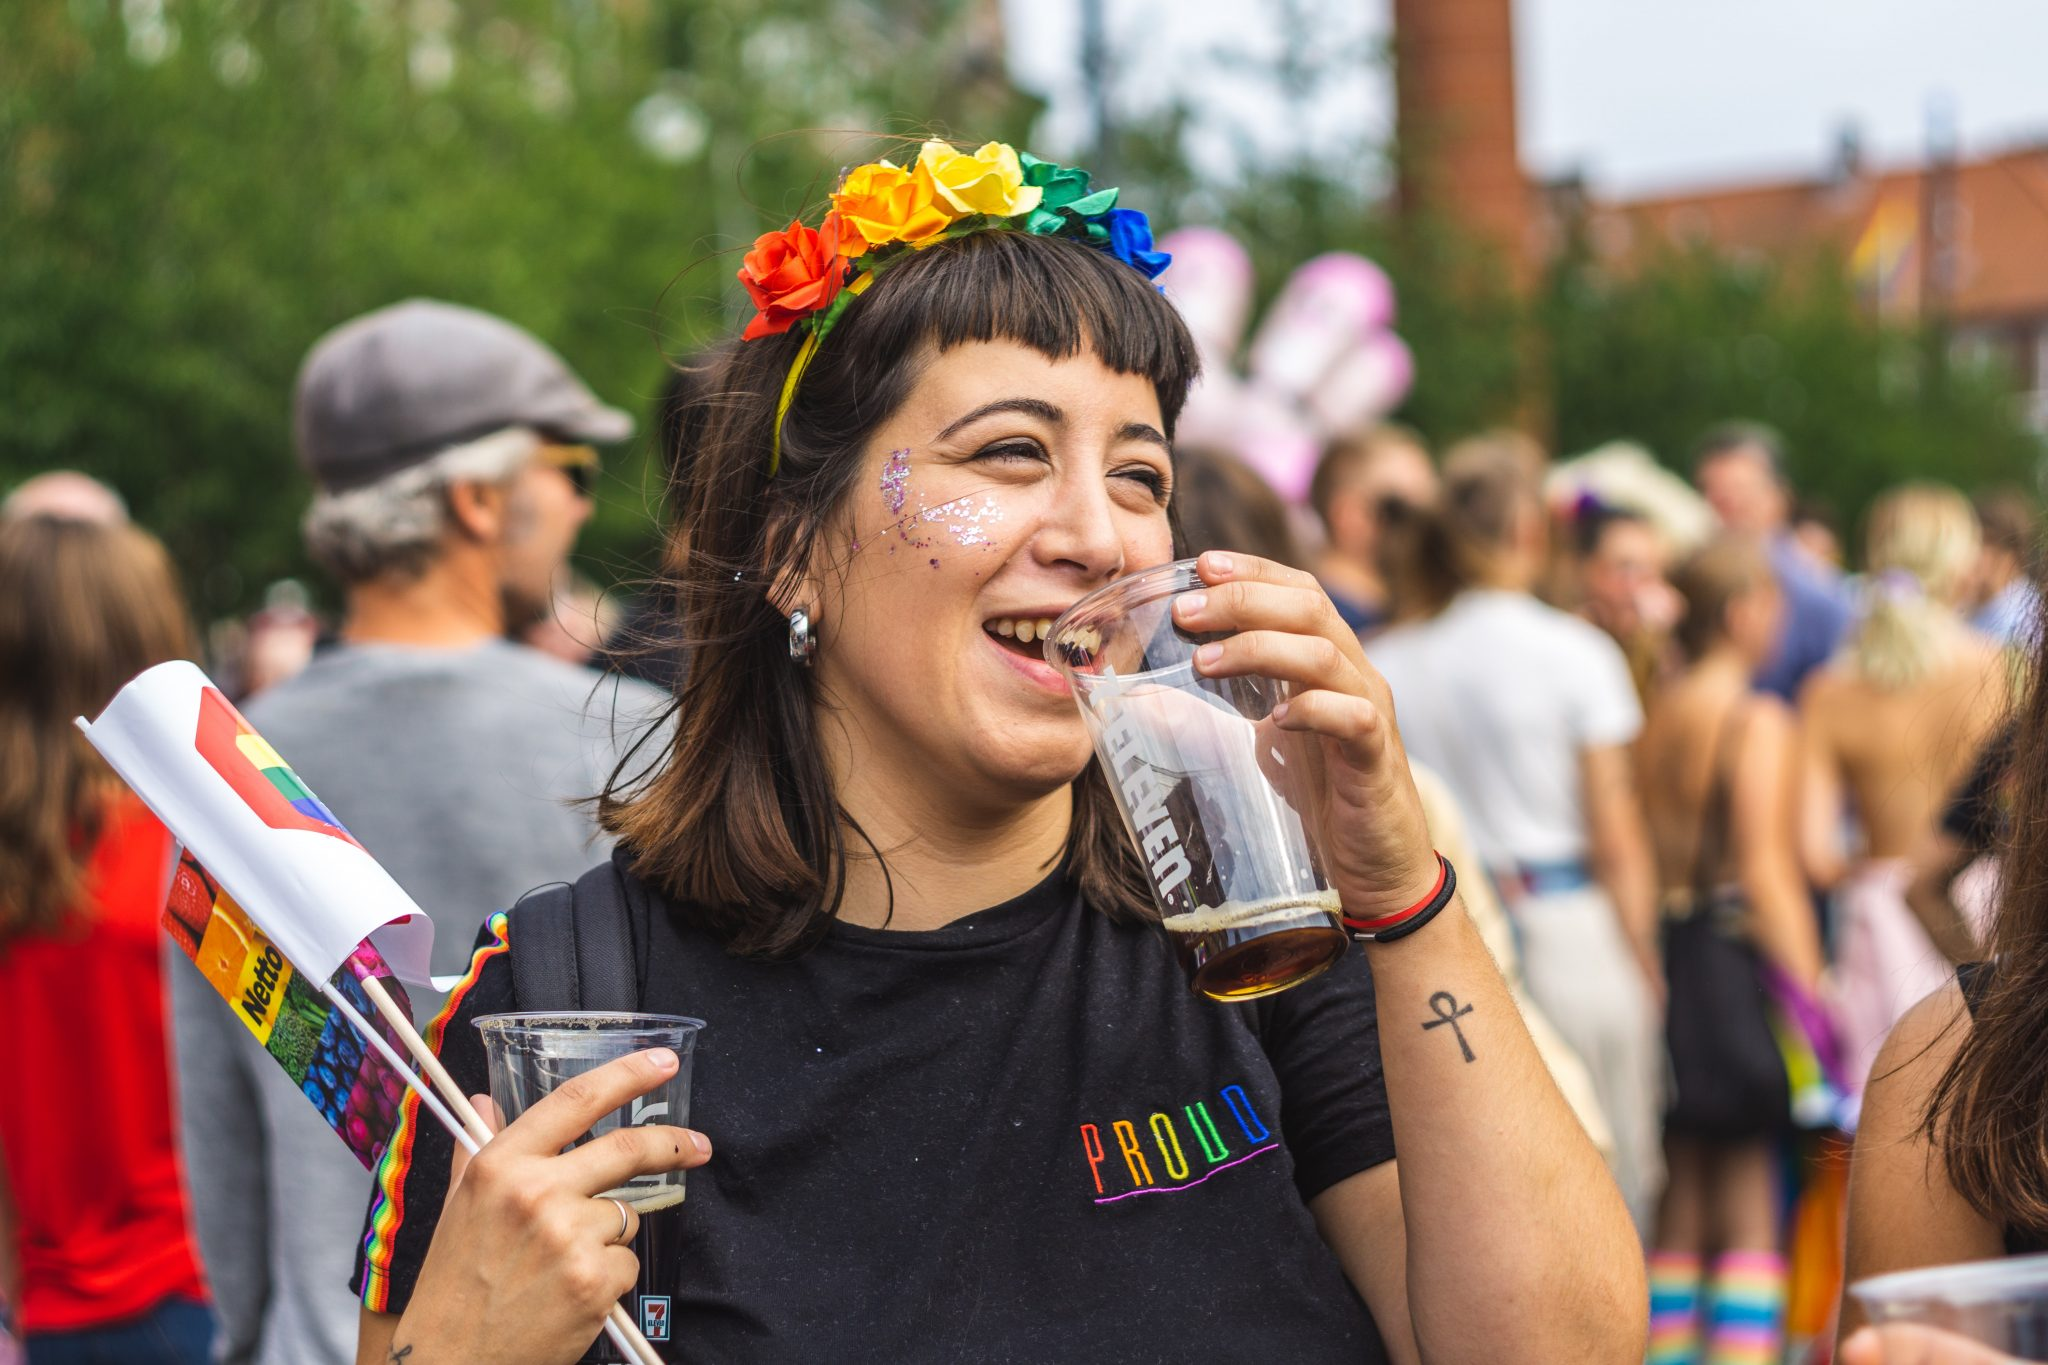 """A woman is at a Pride parade. She has shoulder length dark hair and is holding 2 drinks, one raised to her mouth as she's smiling. In the other hand, she's also carrying a couple of rainbow flags. She's wearing a black shirt that says """"proud"""" in rainbow letters, and has a rainbow flower crown on her head. She also has glitter on her face. The crowd behind her is blurred."""